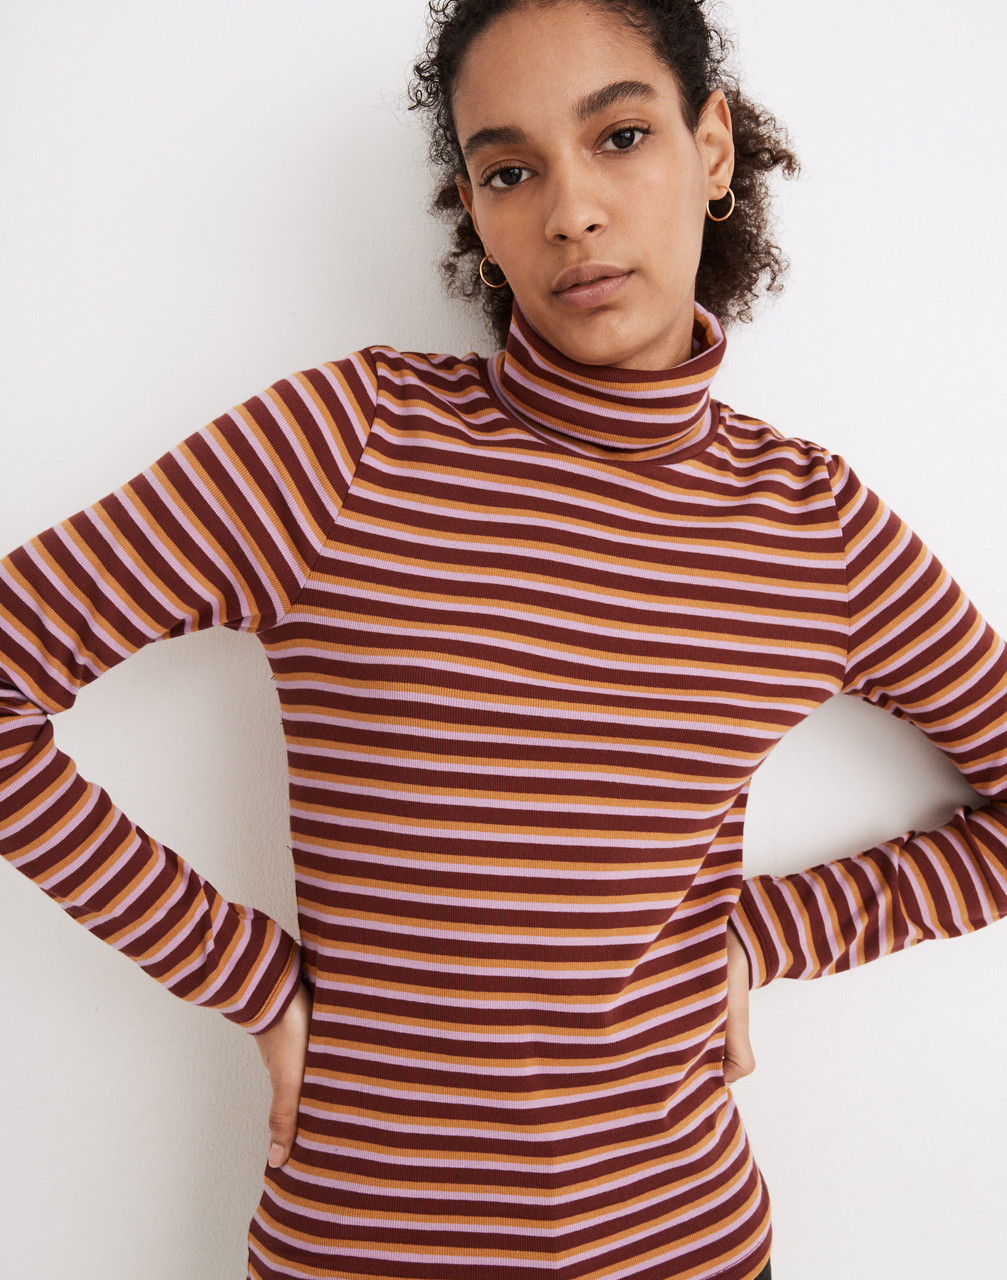 60s Shirts, T-shirts, Blouses, Hippie Shirts Ribbed Turtleneck Top in Chilton Stripe $26.99 AT vintagedancer.com